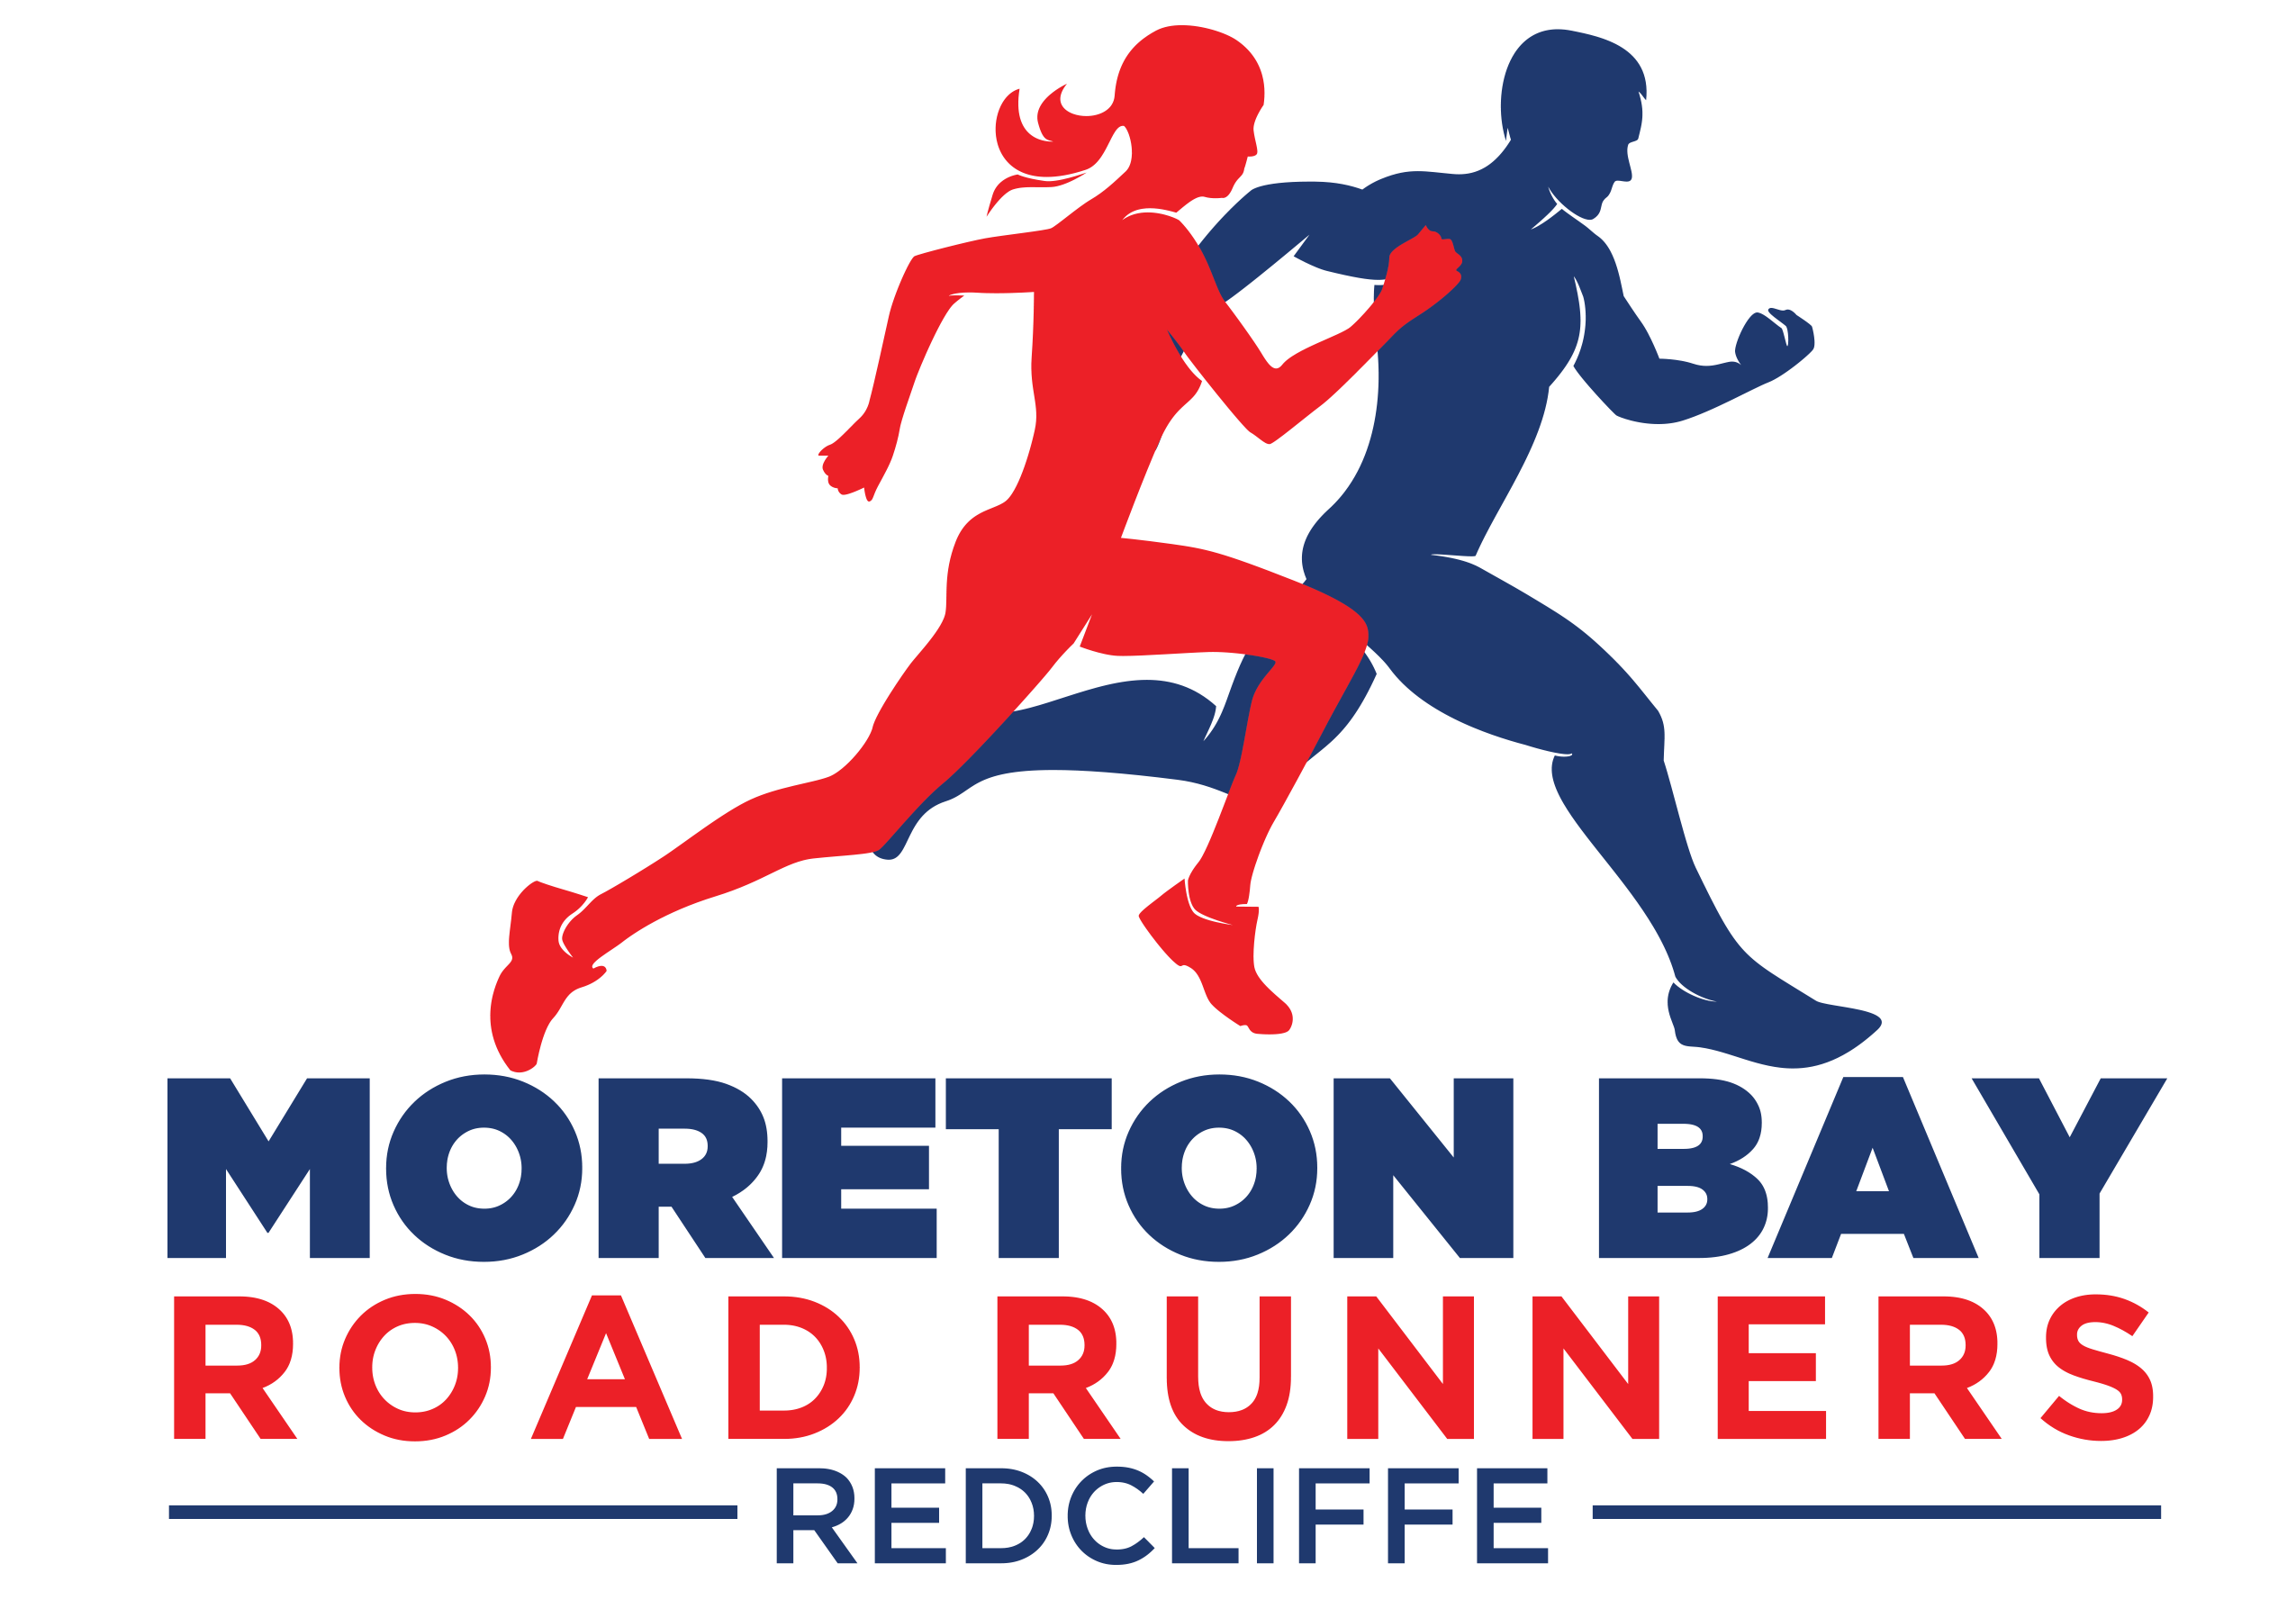 Moreton Bay Road Runners